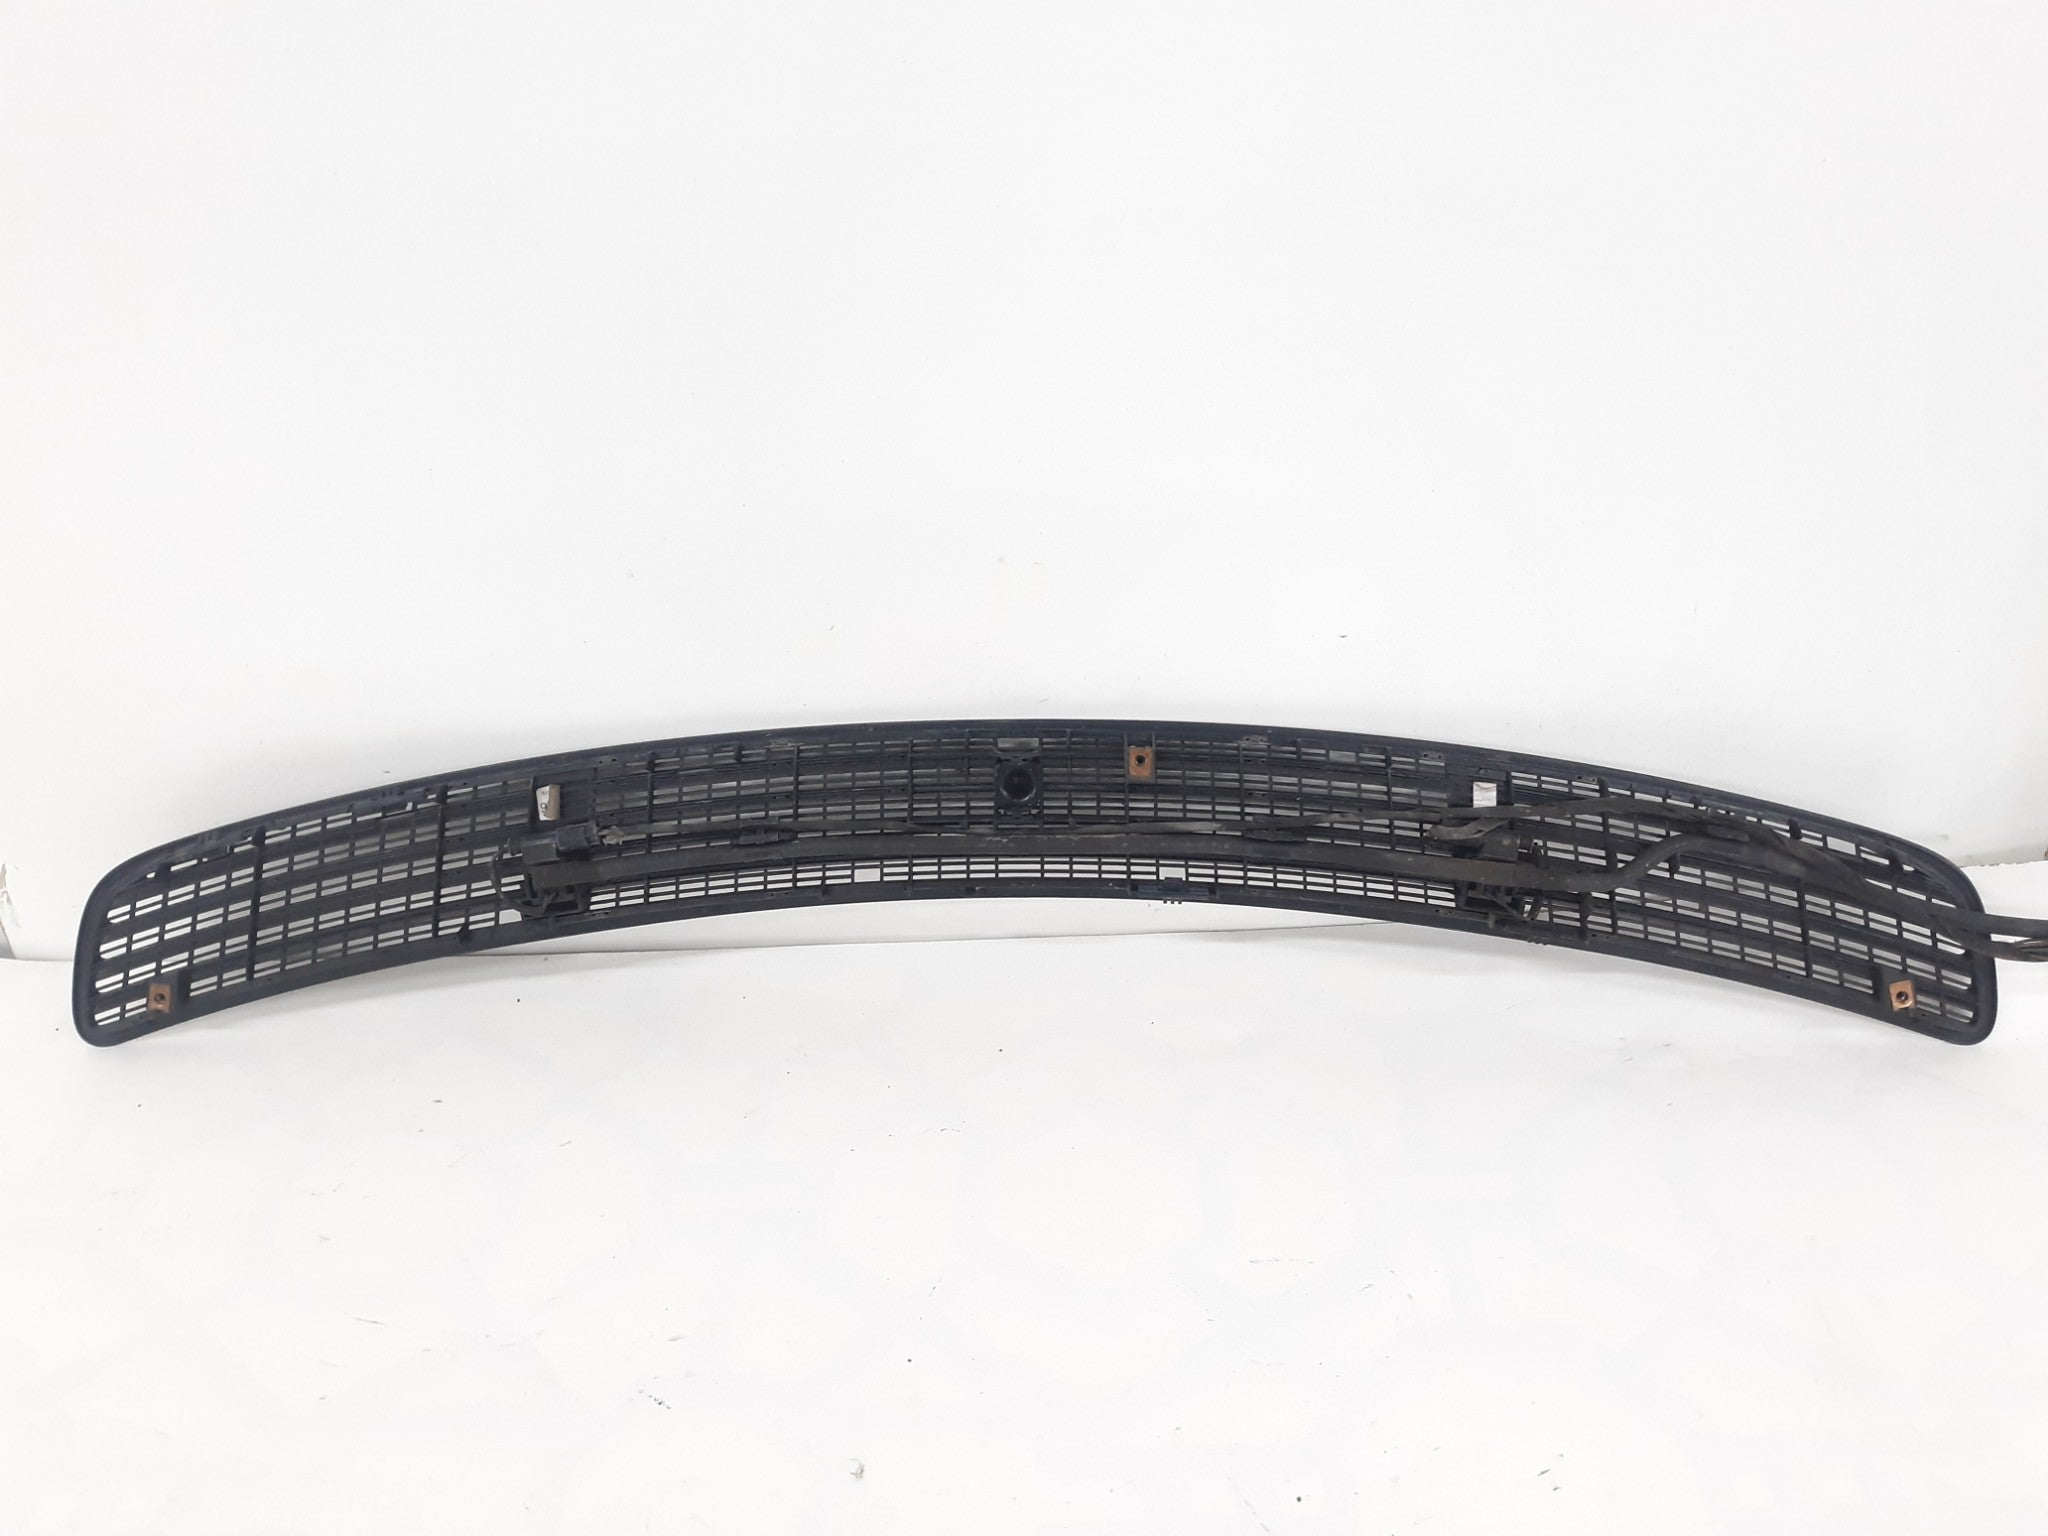 2003-2009 MERCEDES W209 CLK500 CLK320 CLK550 HOOD AIR VENT TOP GRILL A2038800205 - Click Receive Auto Parts